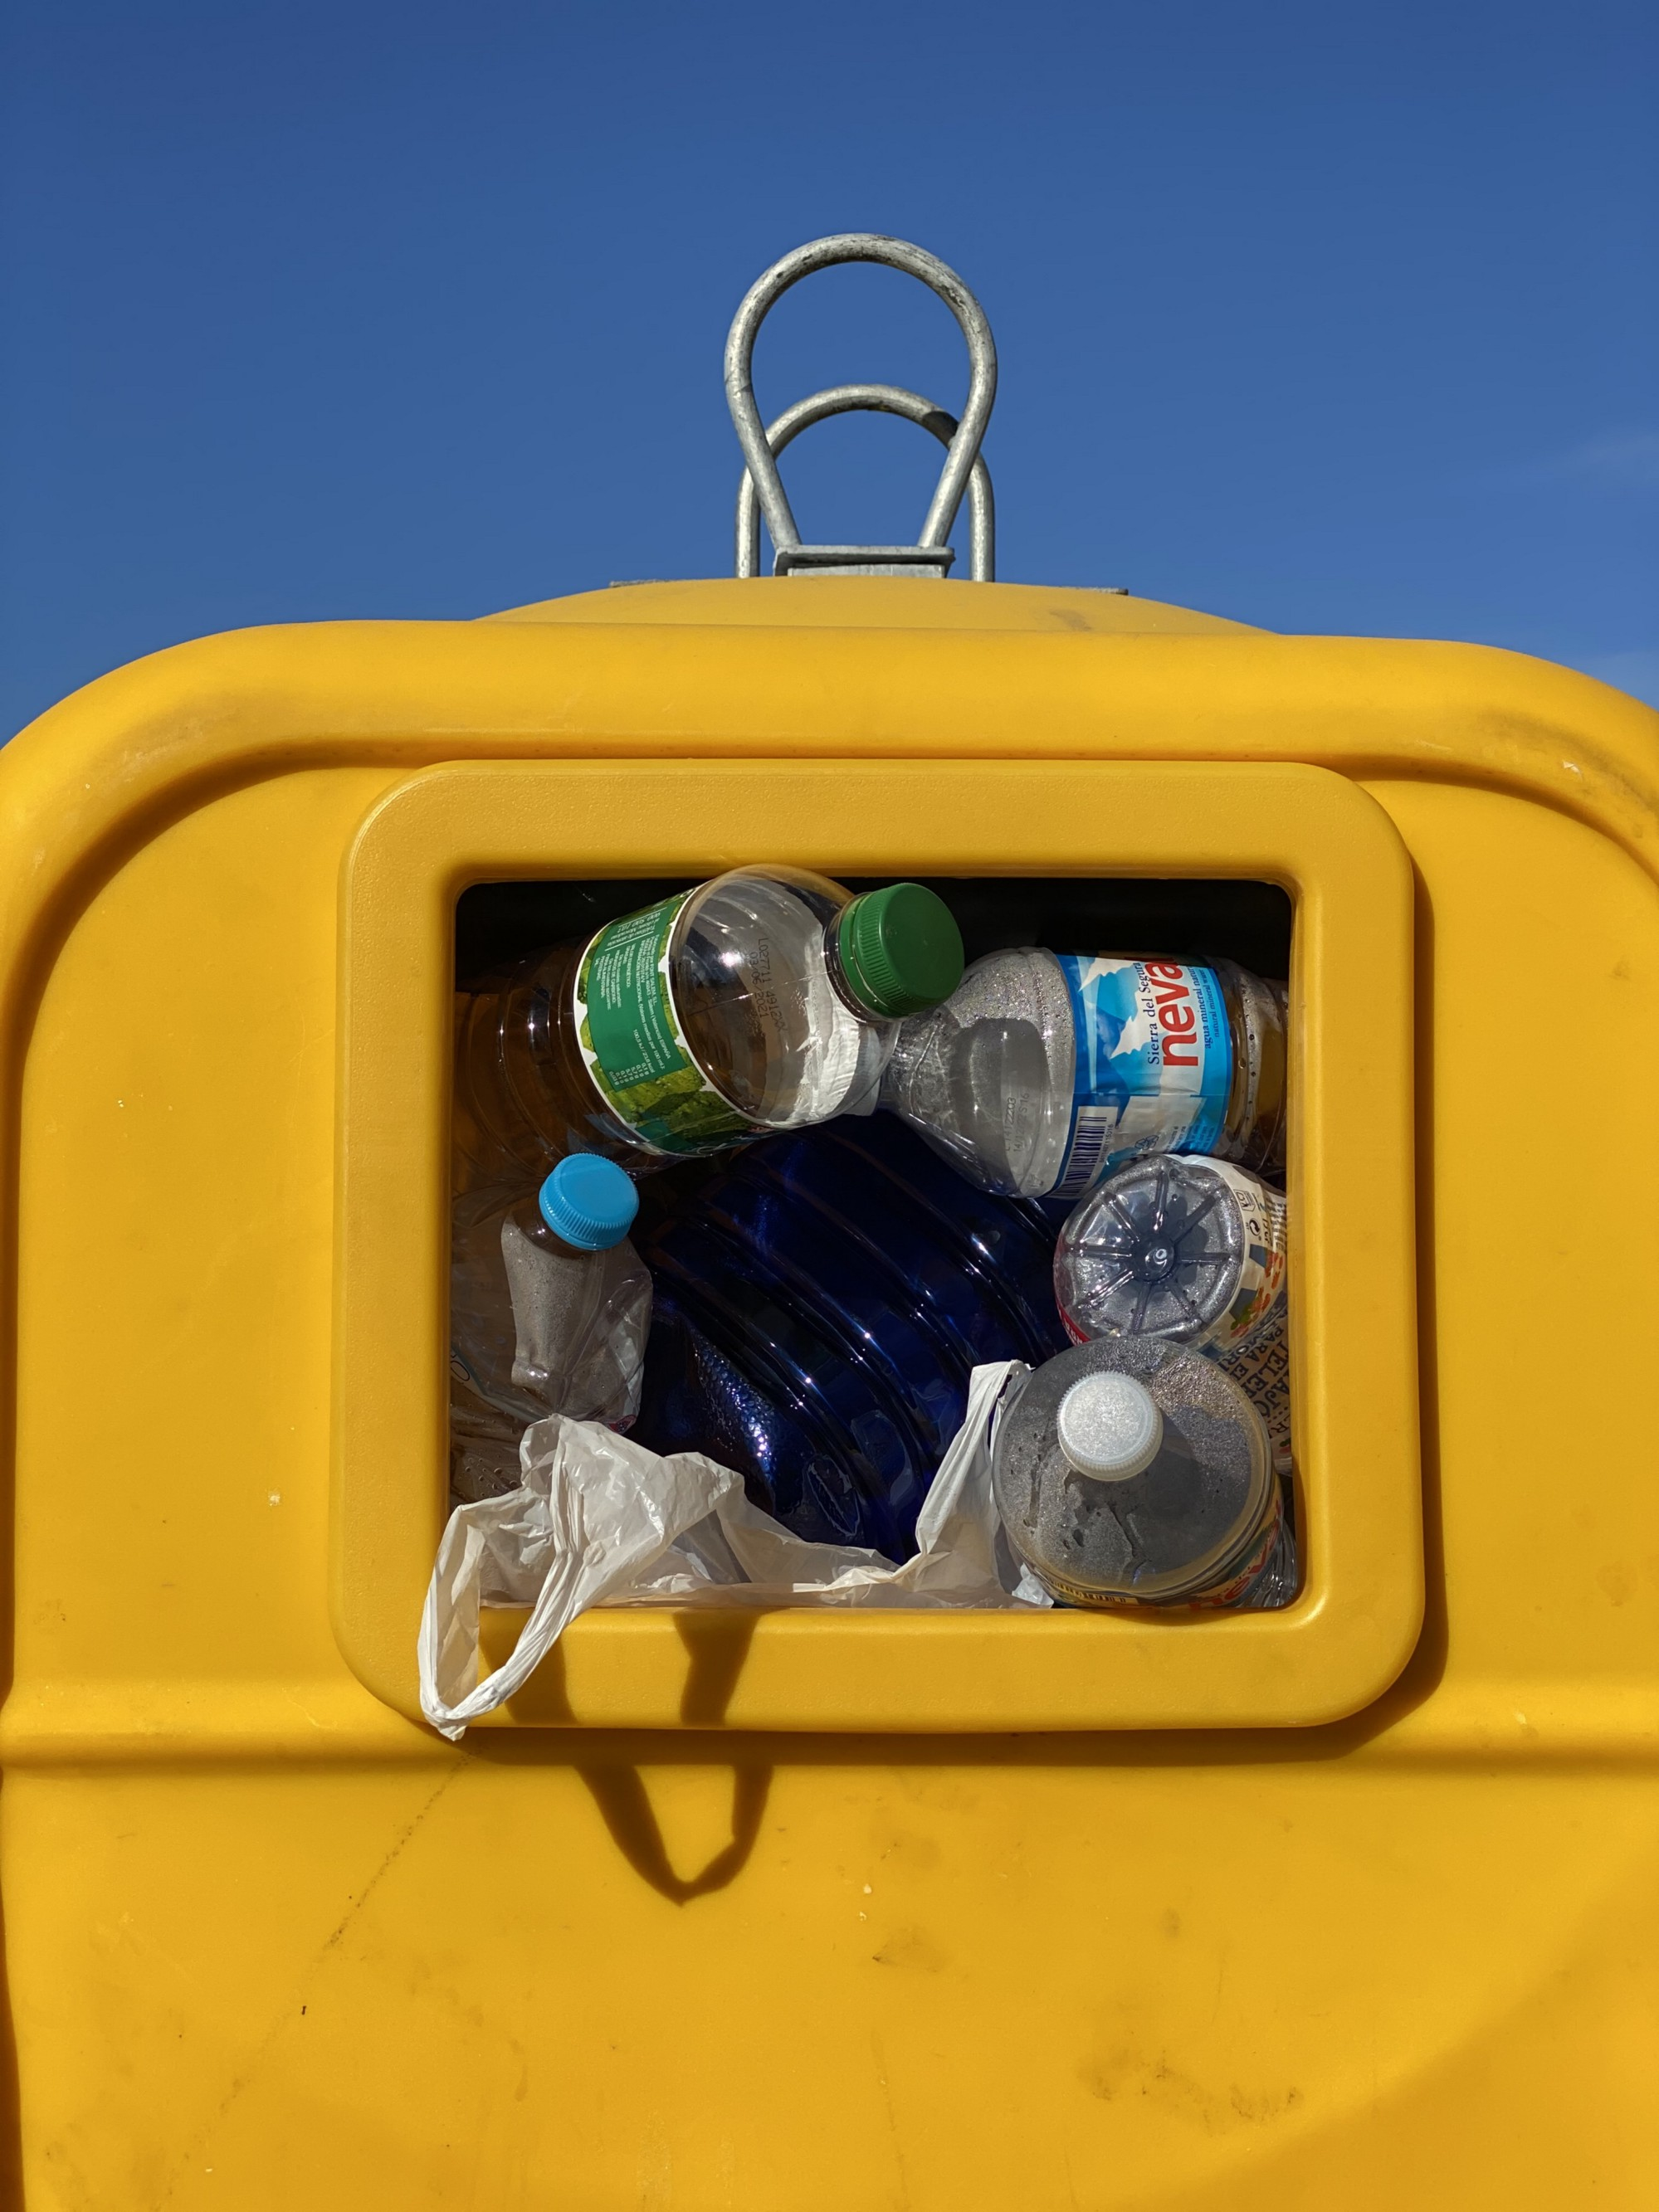 A bright yellow trash can filled with empty plastic bottles and plastic waste.